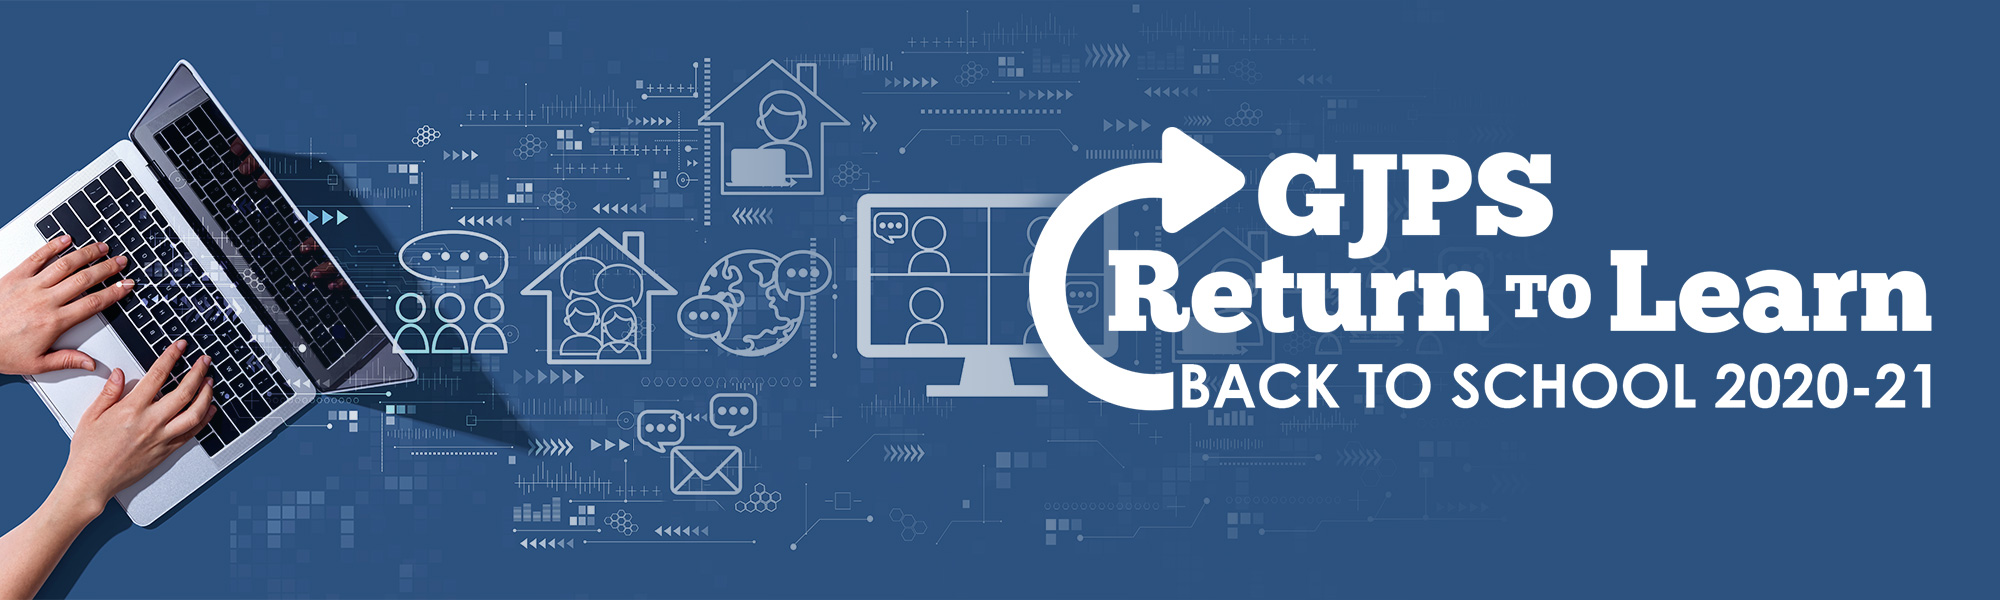 Return to Learn Back to School Banner